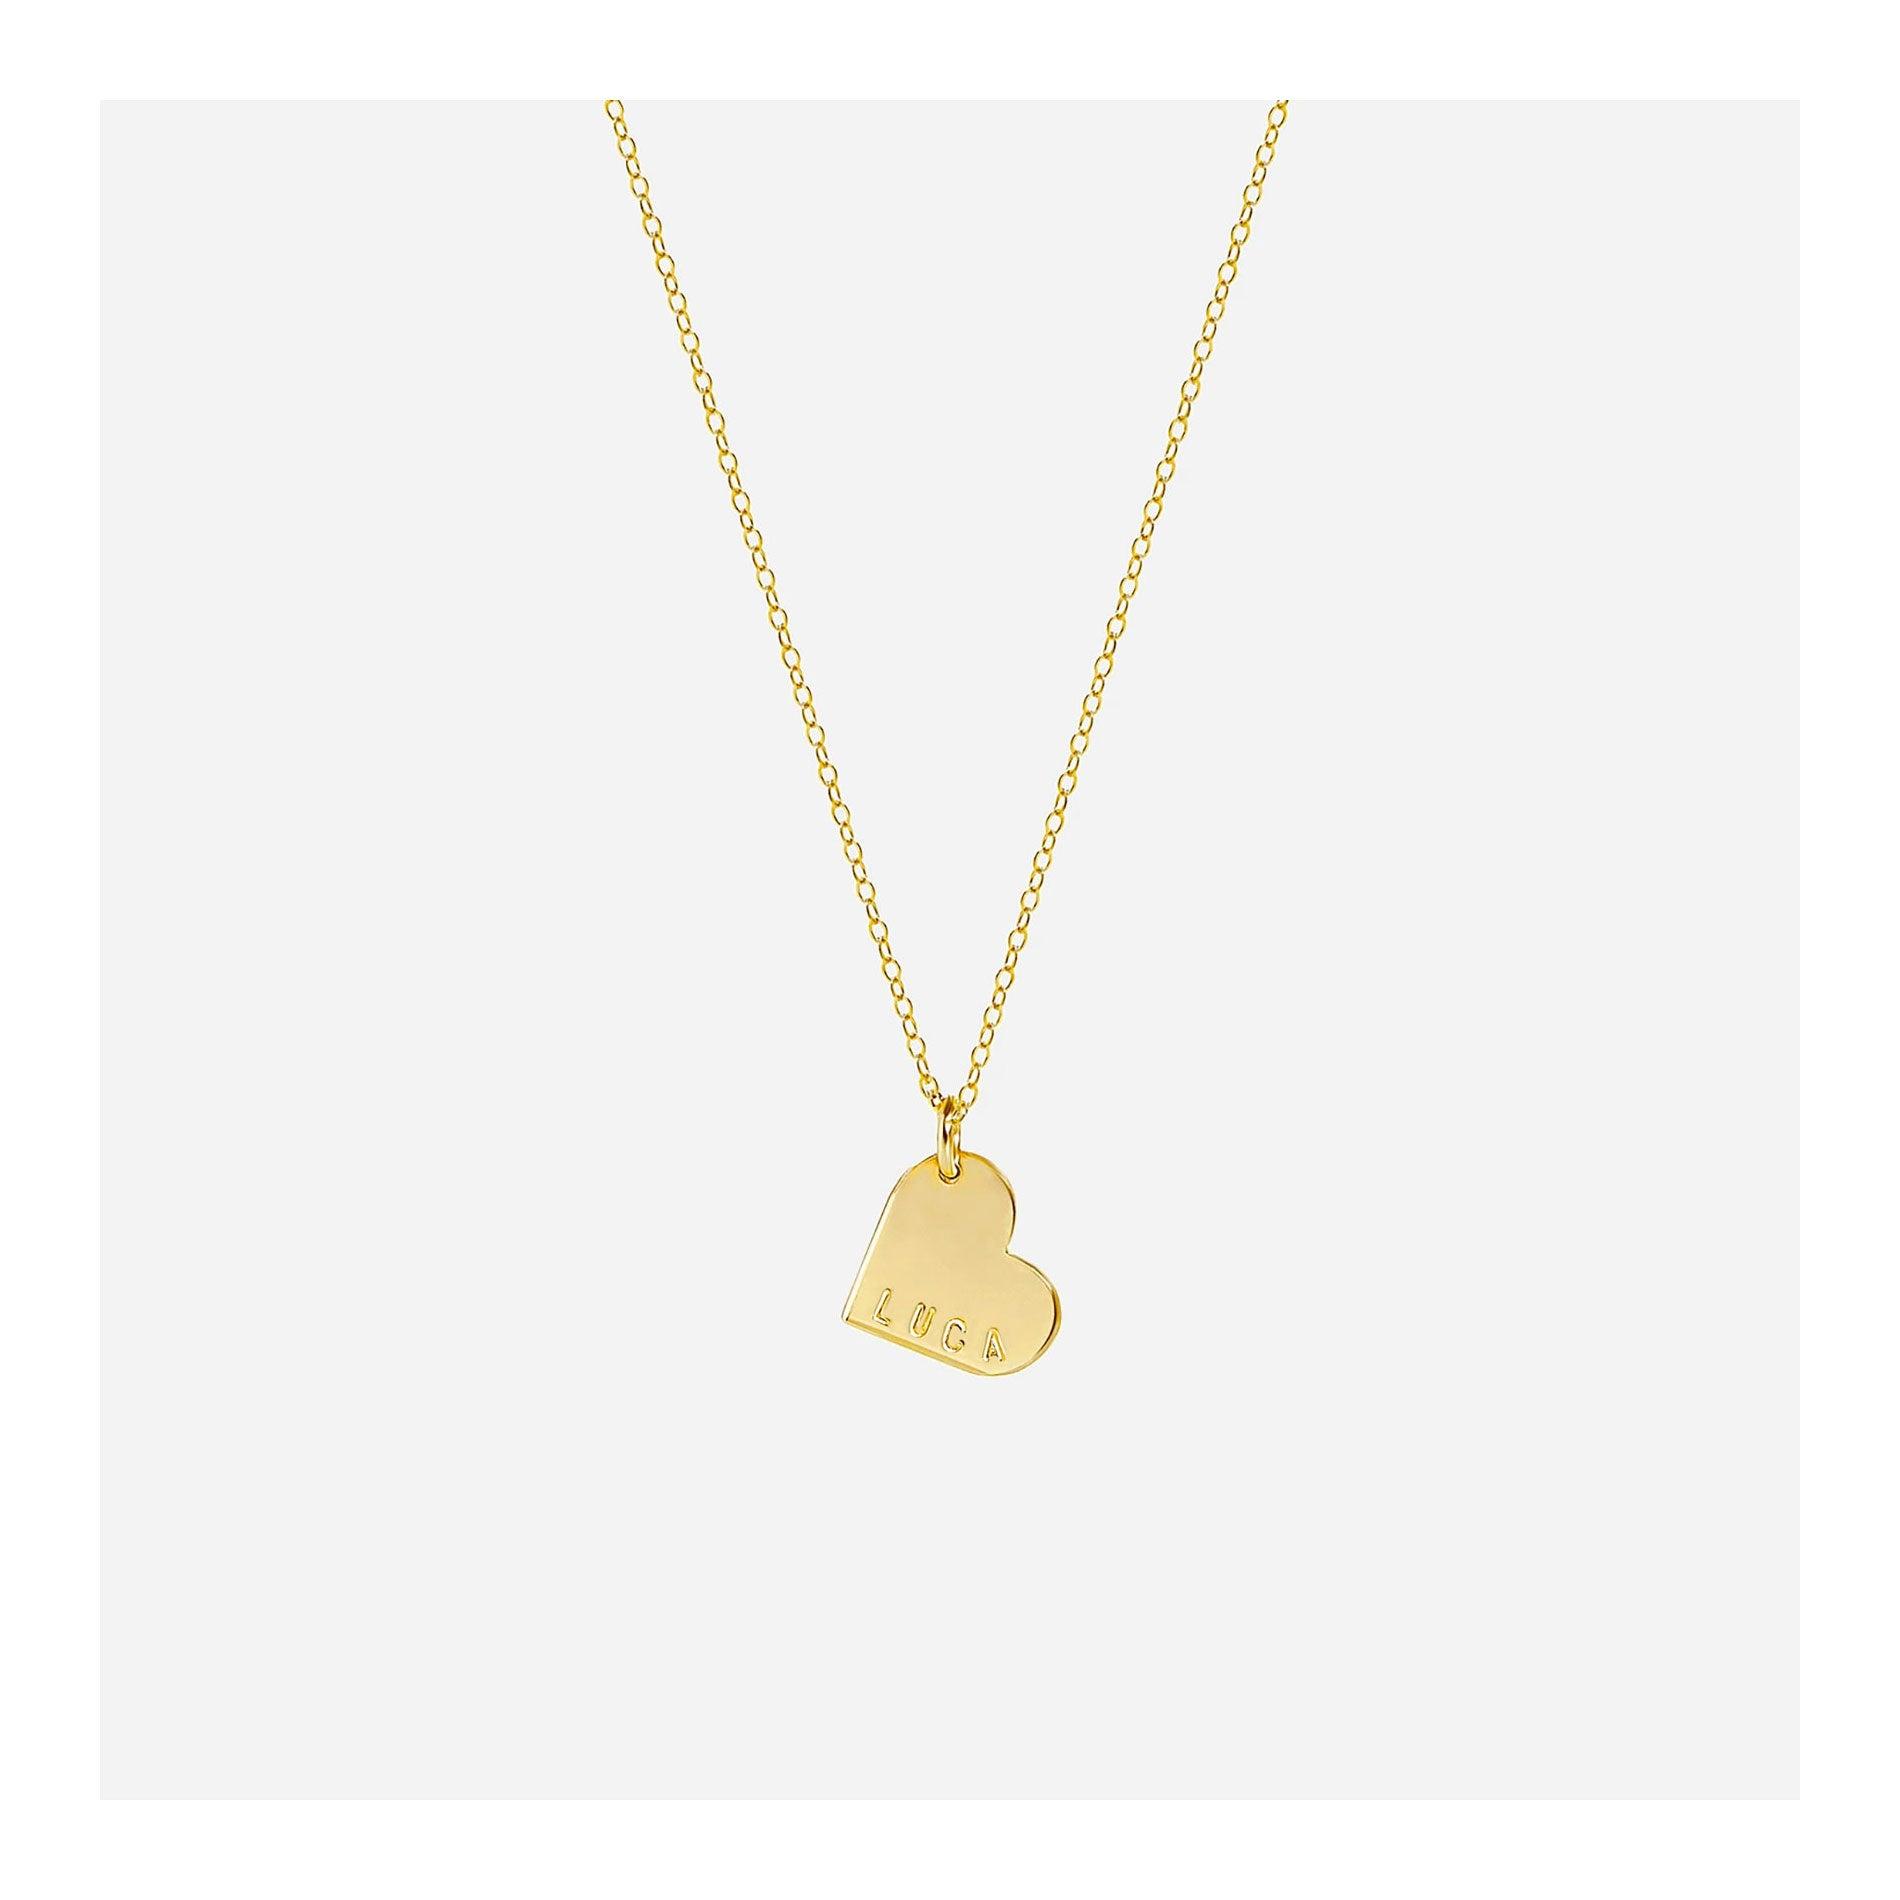 Personalized heart necklace in 14k gold filled